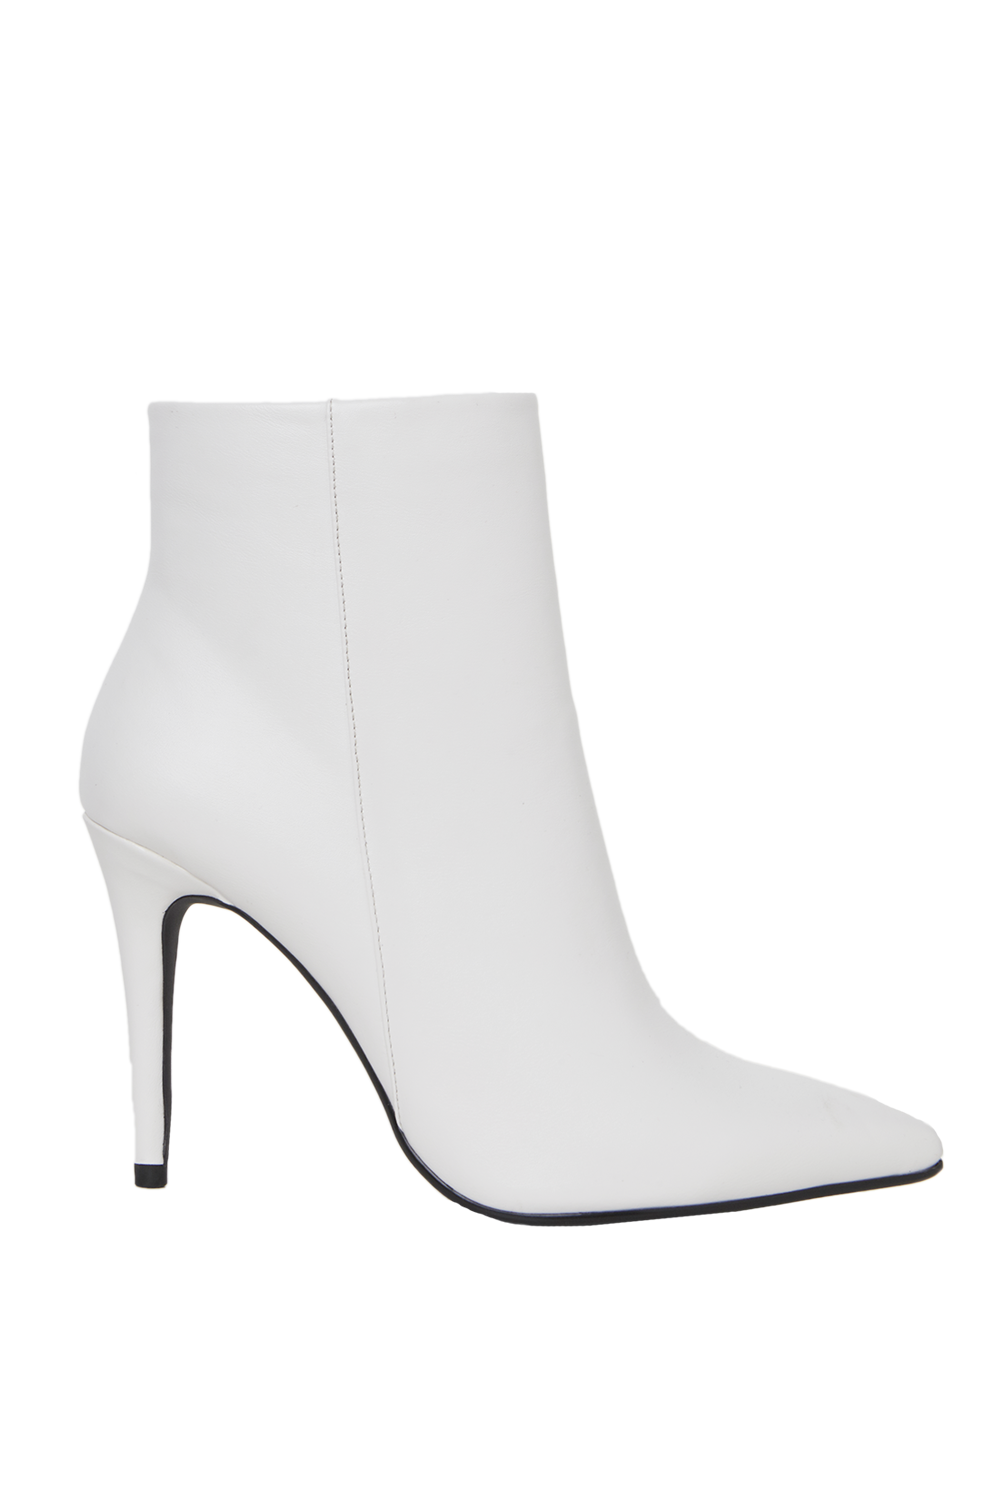 WHITE OUT ANKLE BOOT in colour WHITE ALYSSUM